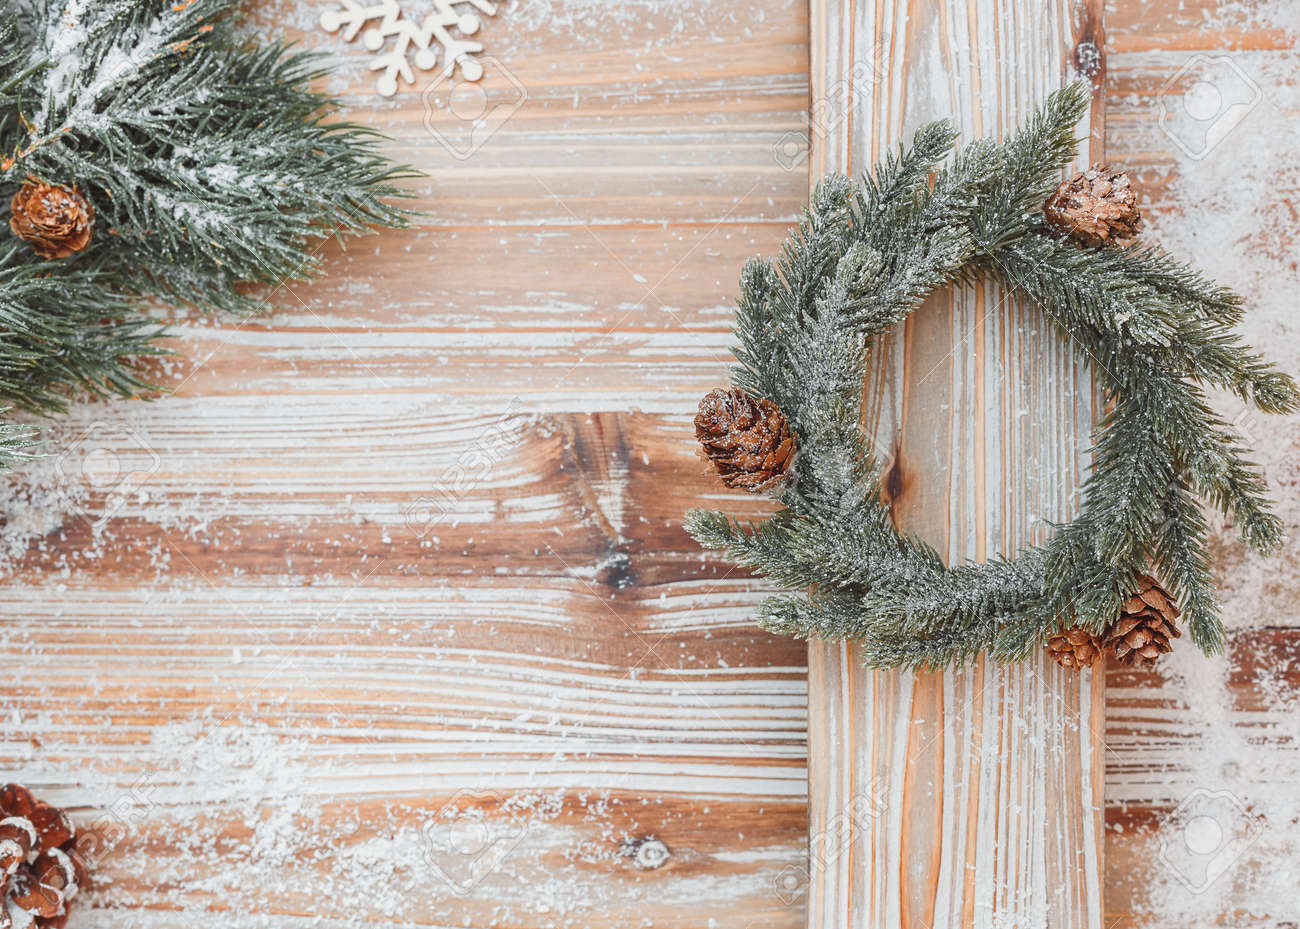 Christmas Card With Fir Tree Branches And Wreath On Rustic Wood ...